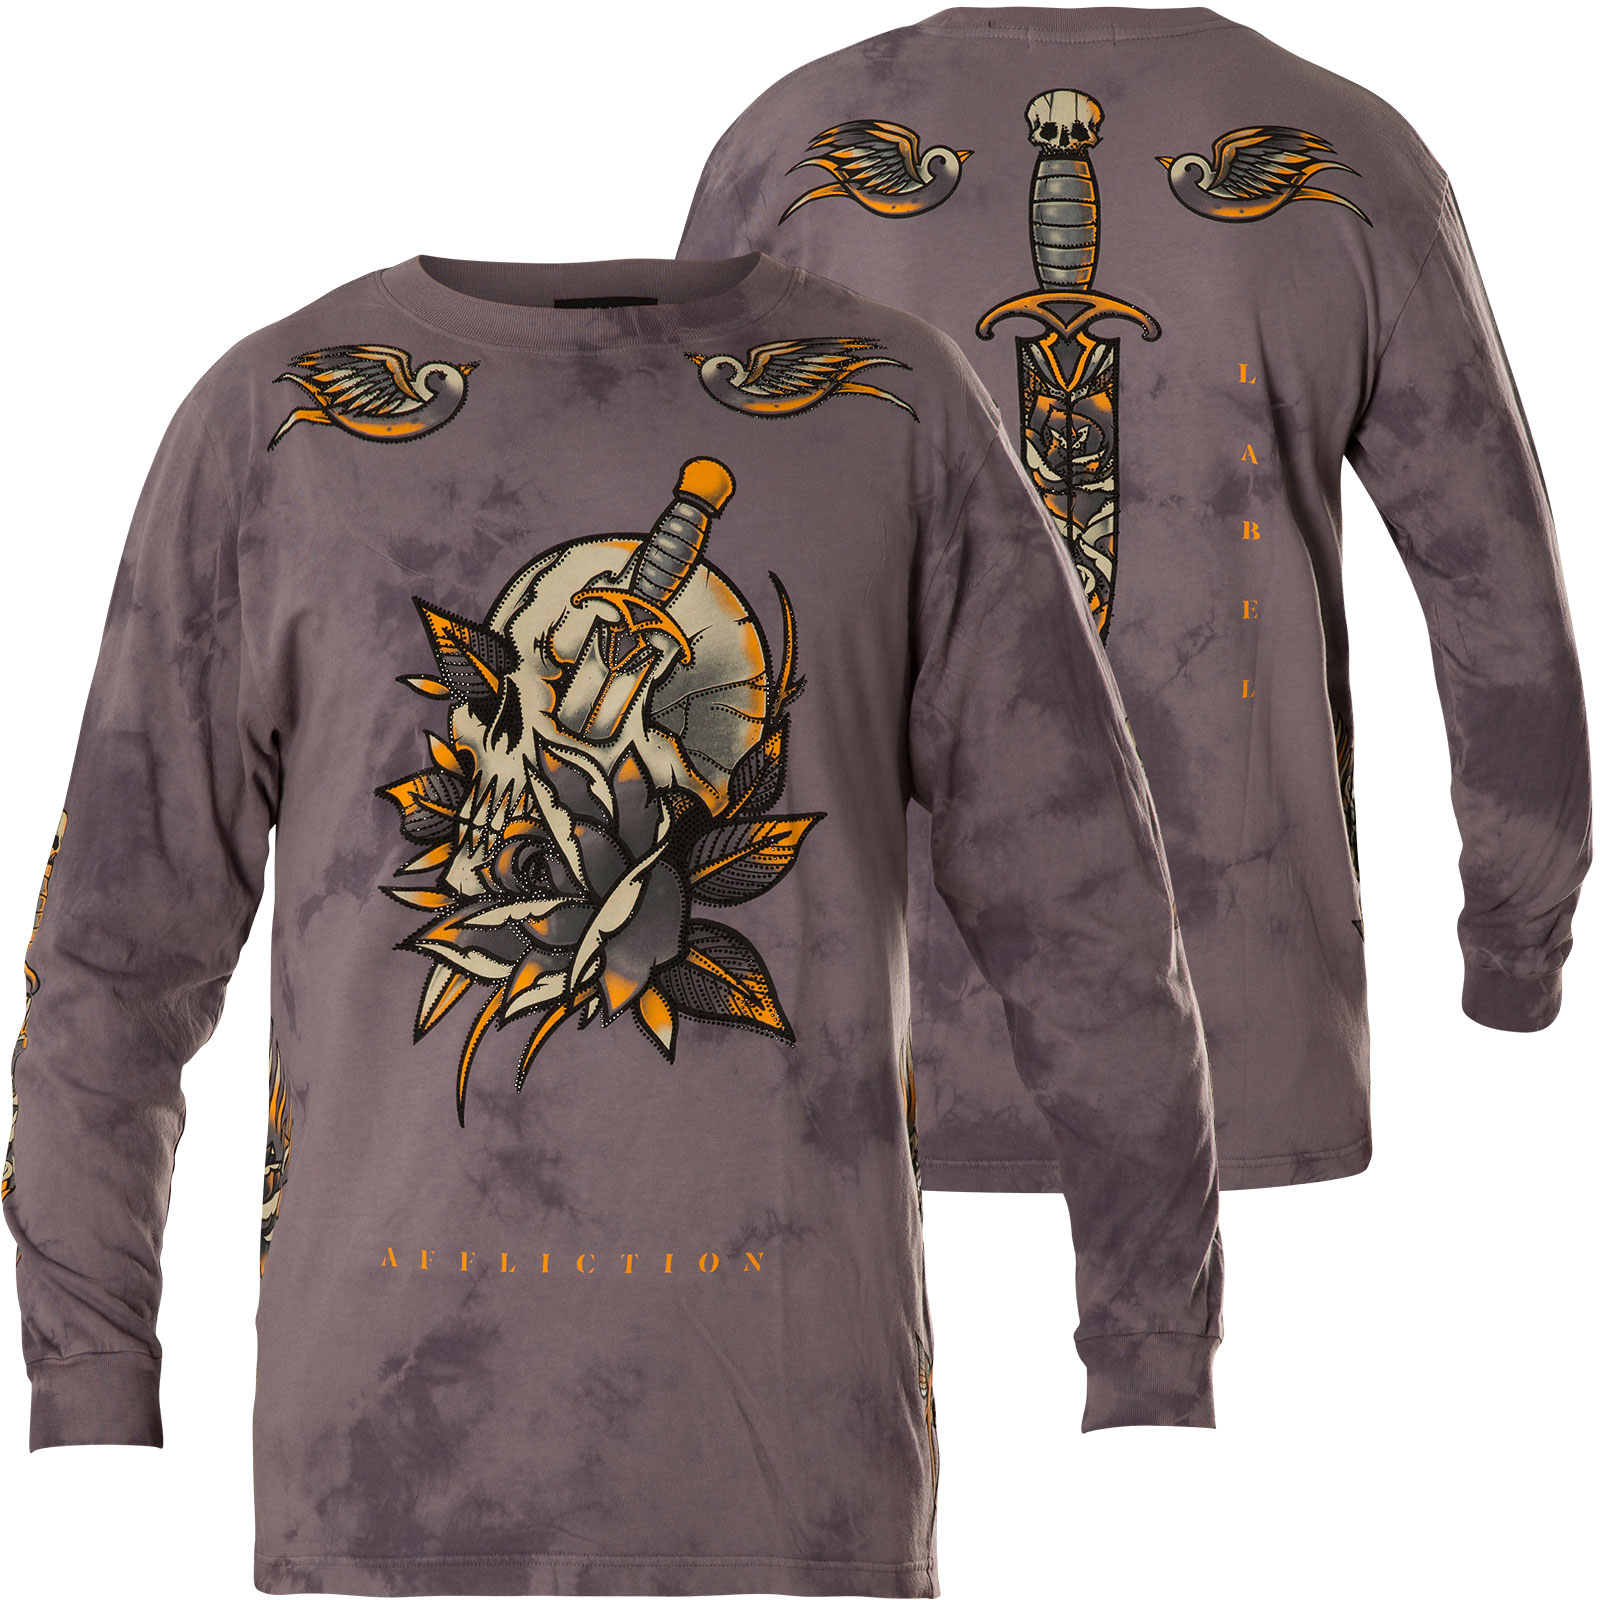 1440c7243fd Affliction Thermal Soul Sacrifice Print featuring a skull and lots ...